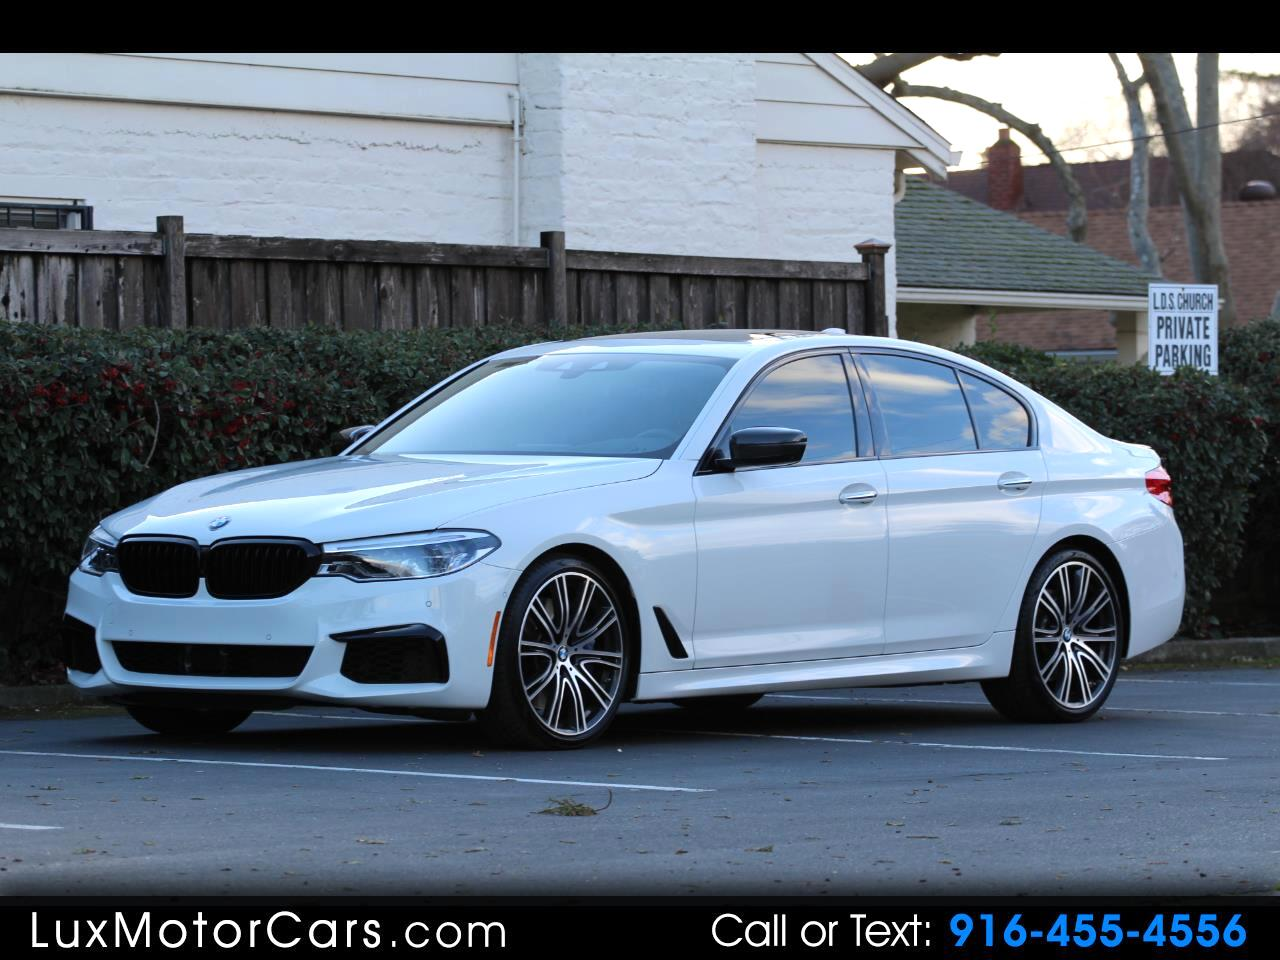 2018 BMW 5-Series M550i xDrive